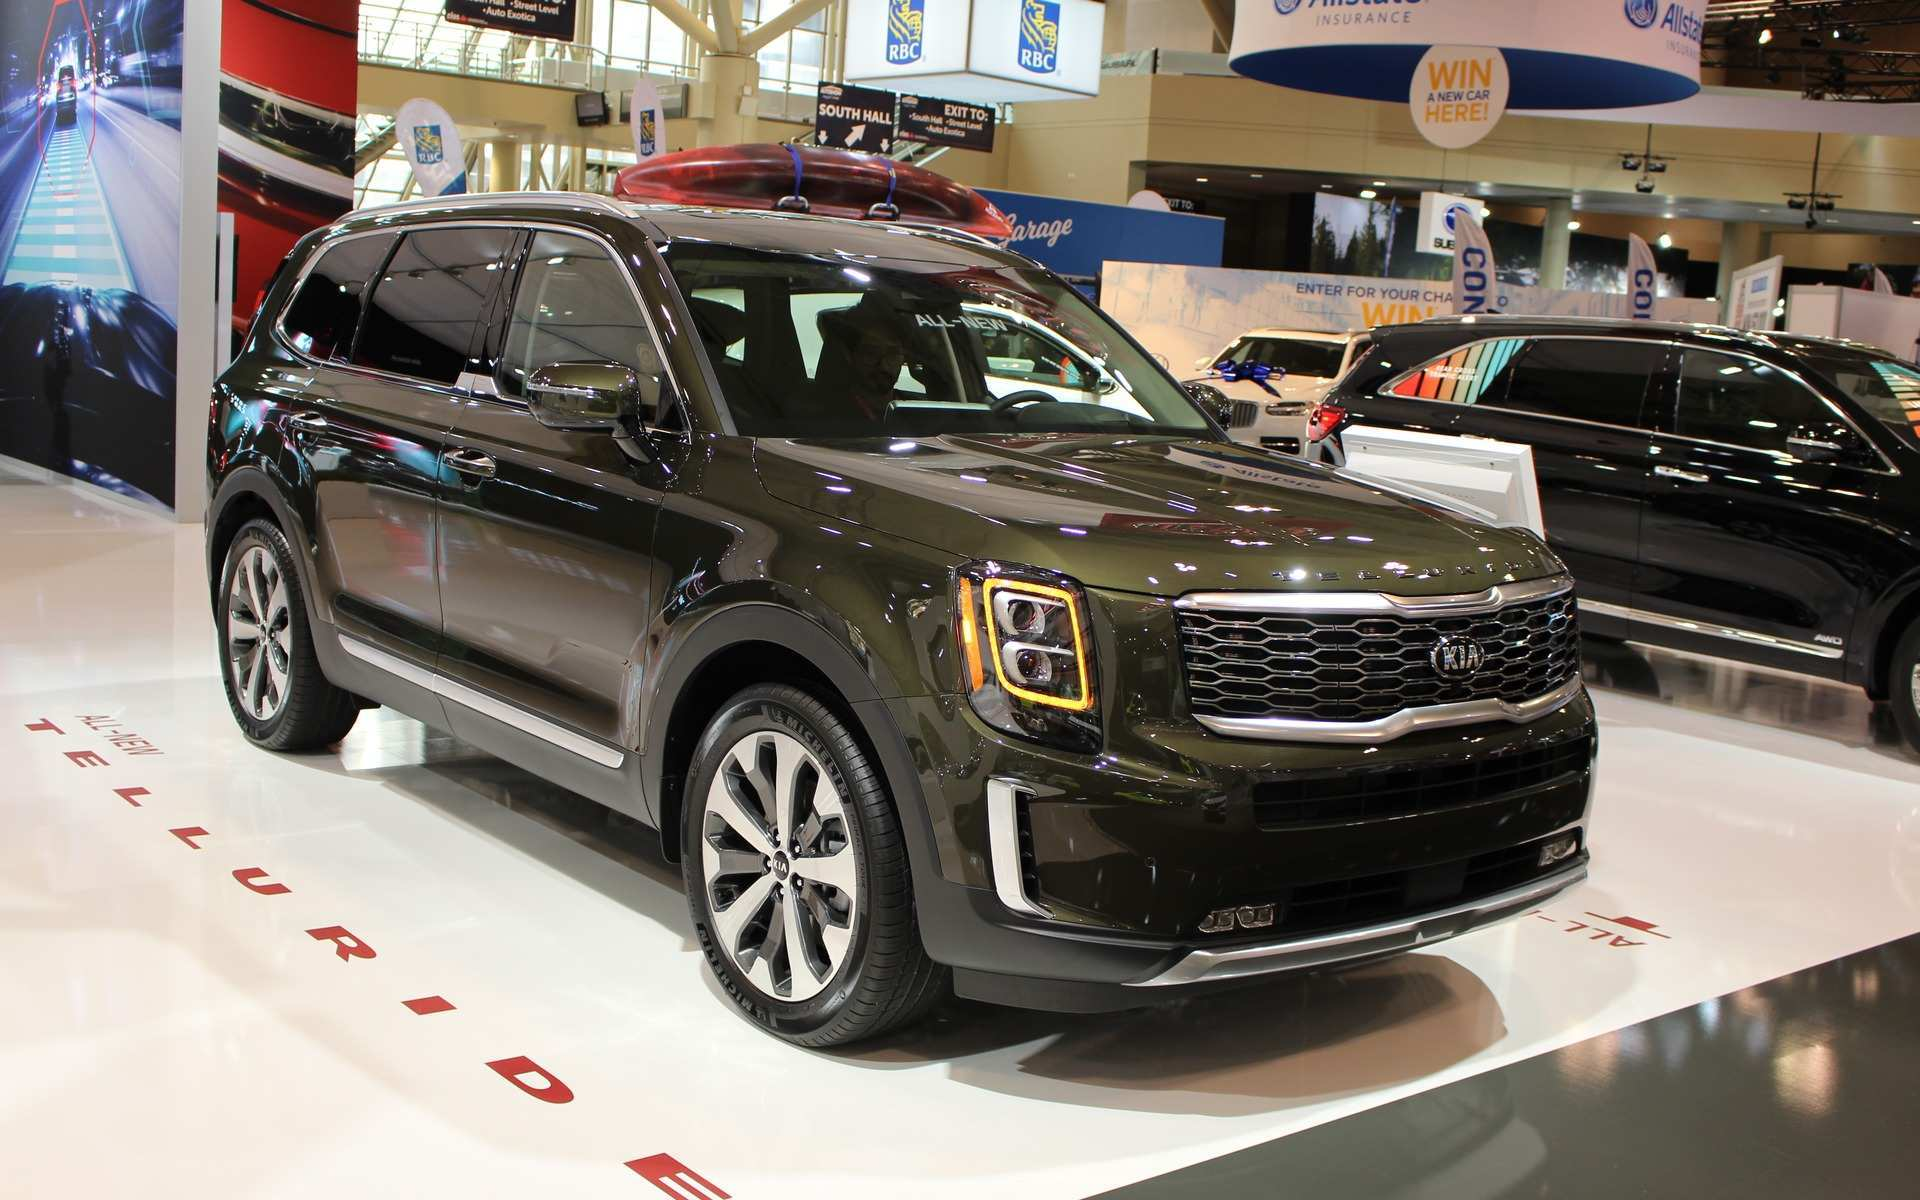 55 The Best 2020 Kia Telluride Images Pricing